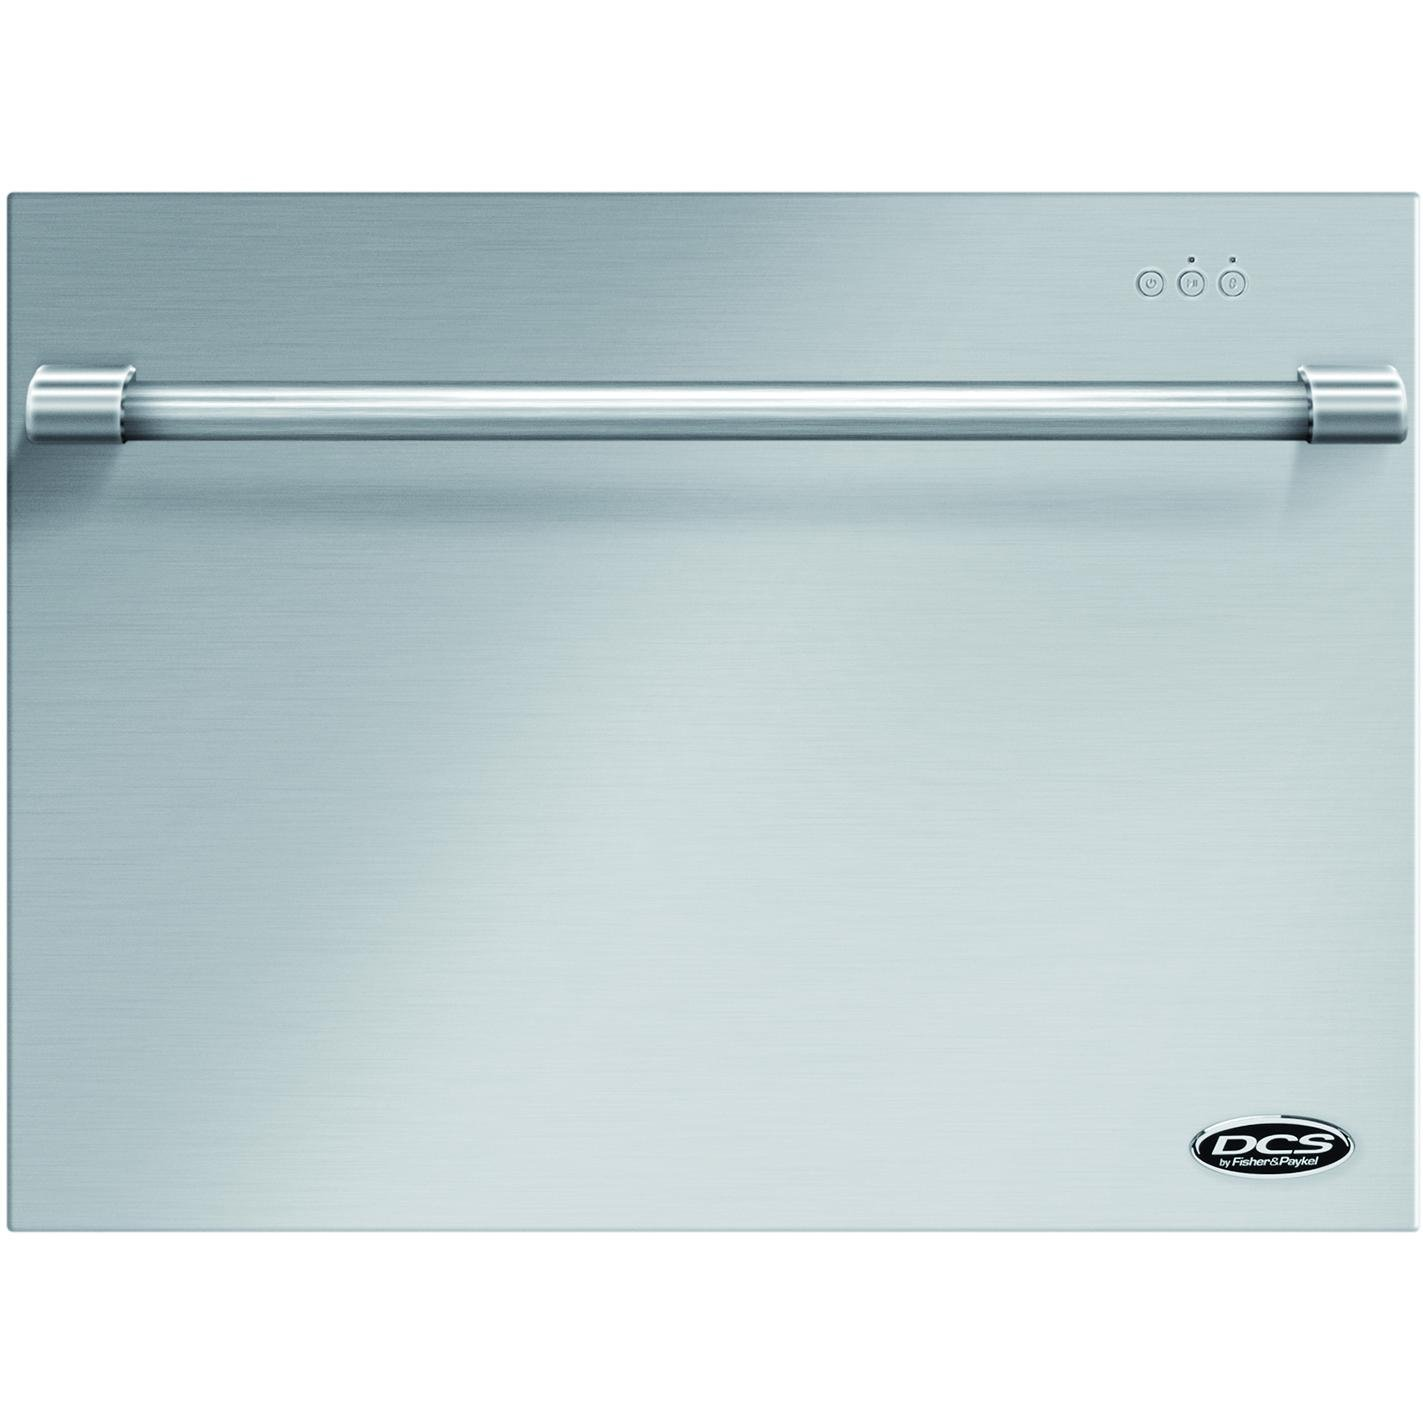 "DCS DD24SVT7 24"" Single Dishdrawer with Handle 7 Place Settings 9 Wash Cycles Quiet Dry ADA Compliance Concealed Wash Cycle Control Panel and Energy Star in Stainless"